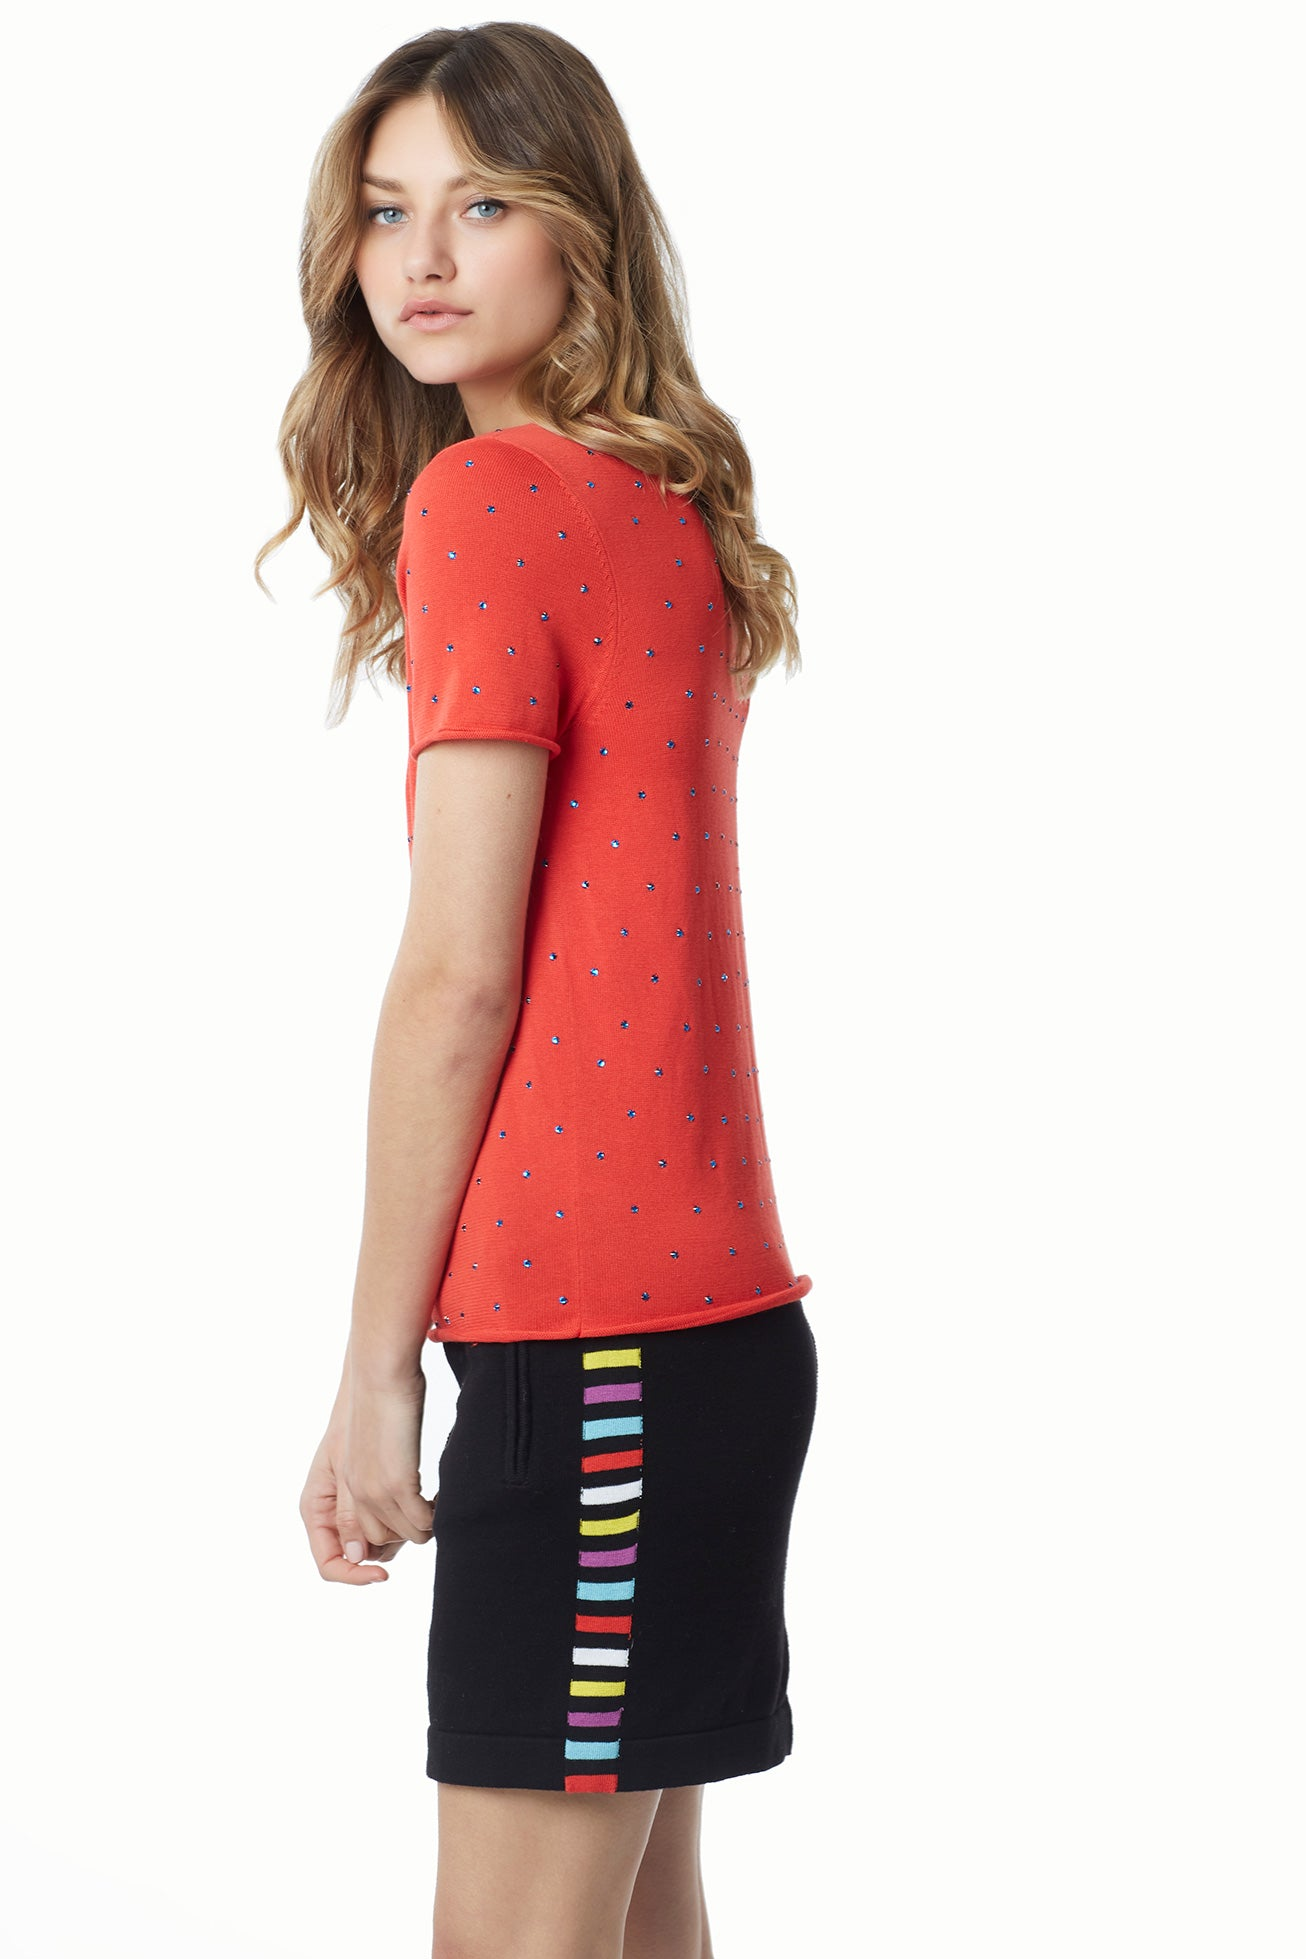 Bedazzle Cotton Modal Knit Tee